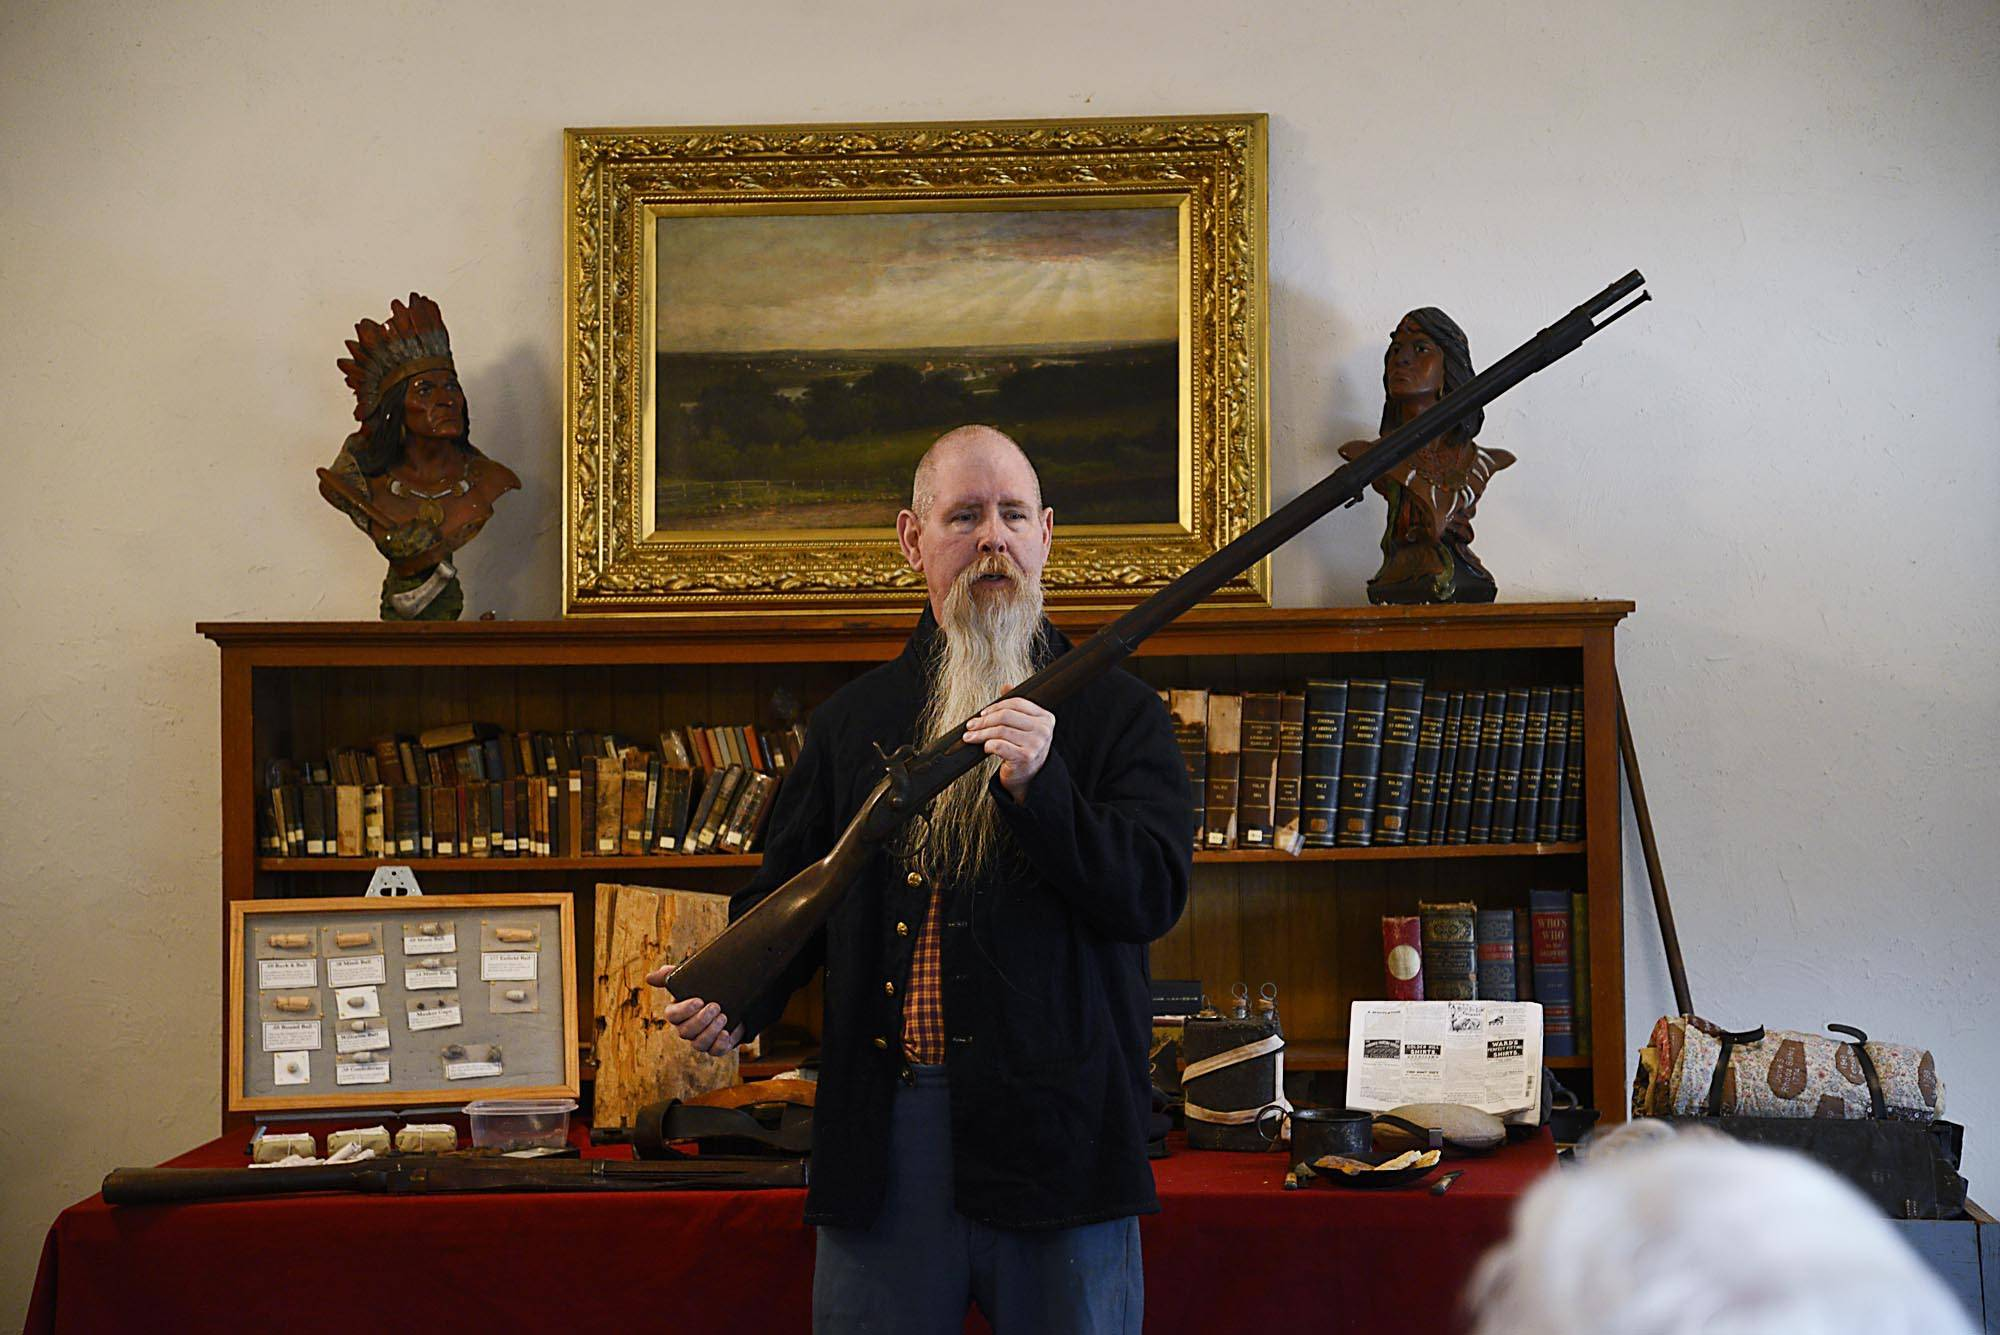 Civil War historian Ken Gough of Elgin holds an 1827 flintlock rifle he says he can trace to specific battles of the Civil War, during a recent presentation at the Dundee Township Historical Society in West Dundee. He spoke about the 52nd Regiment Illinois Volunteer Infantry.